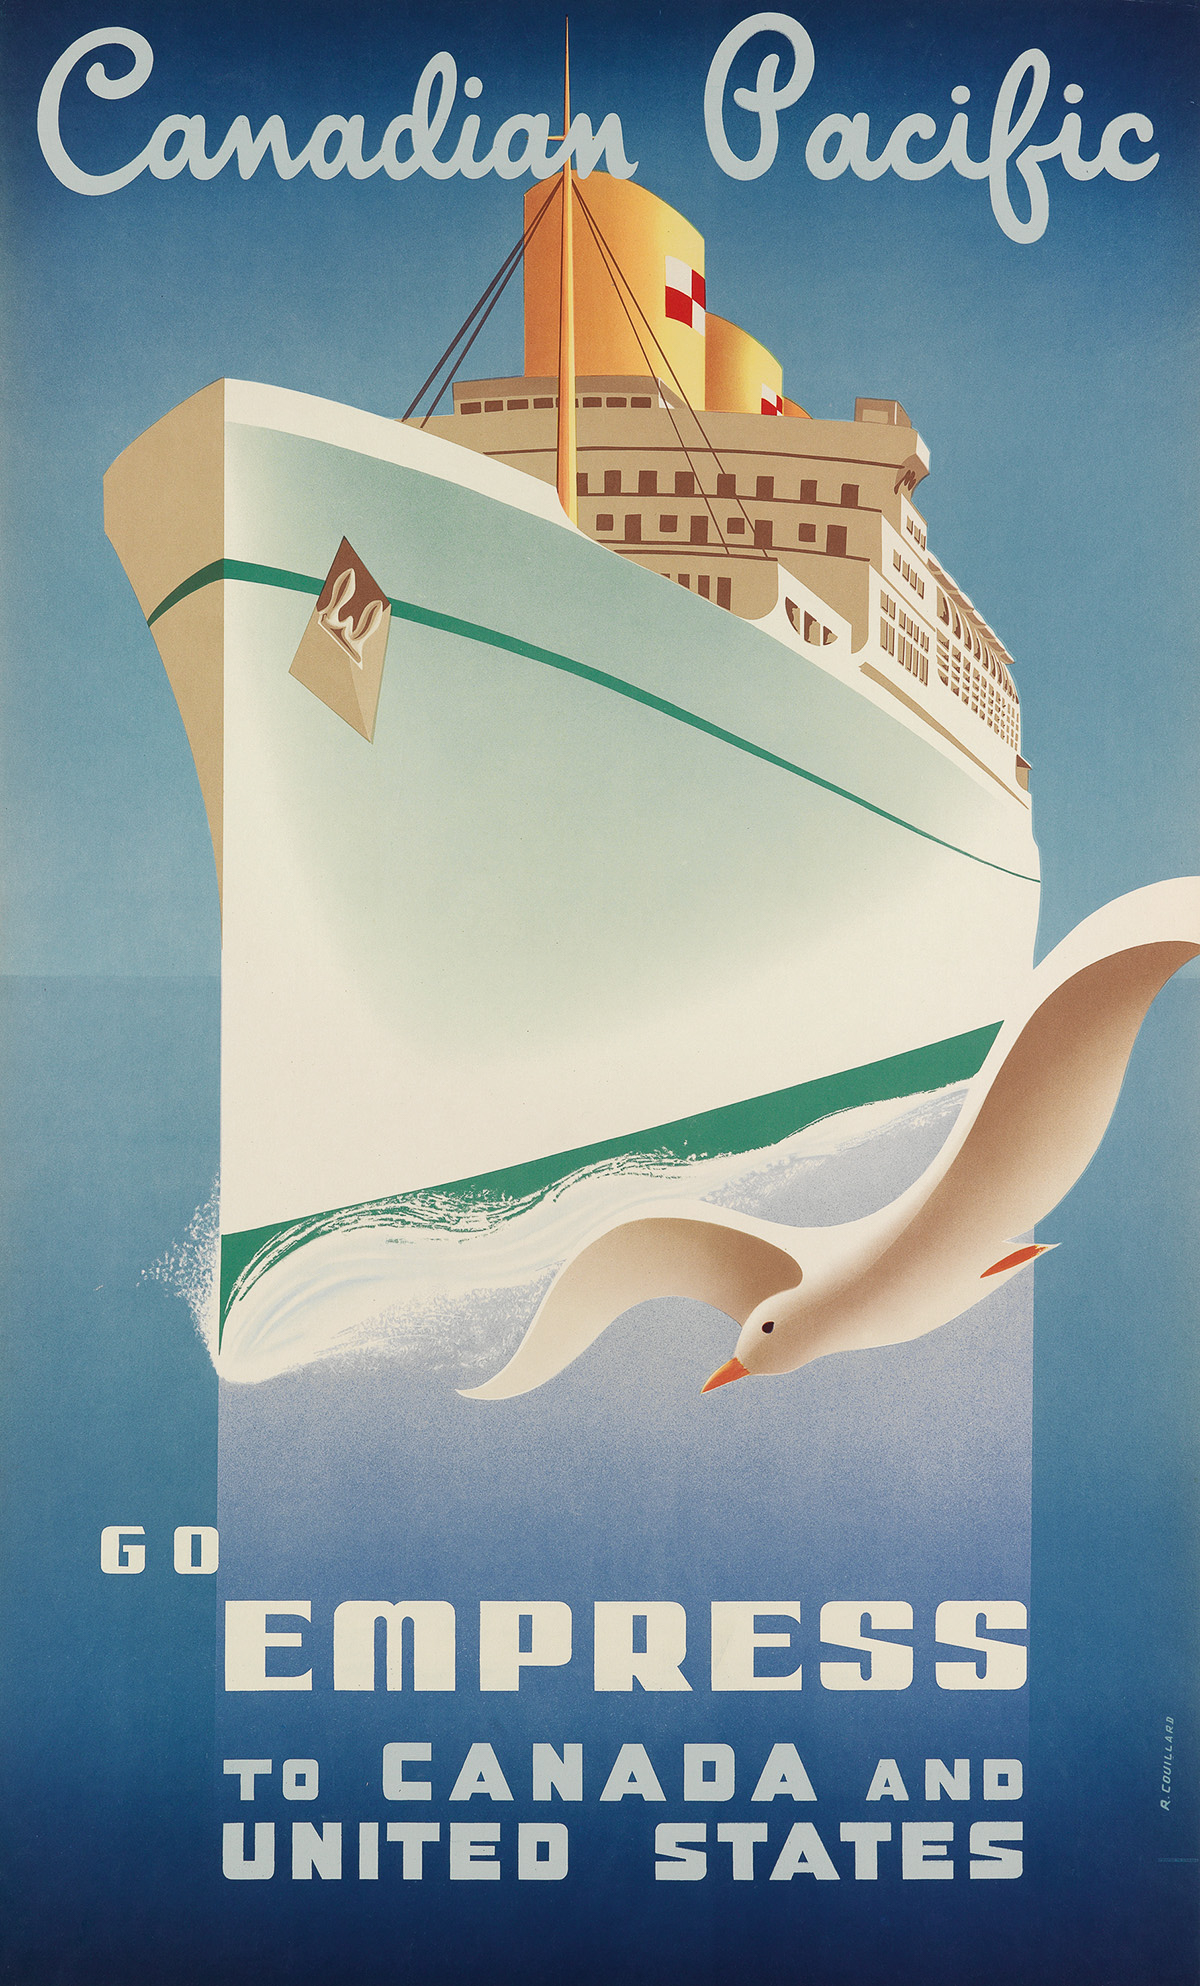 ROGER COUILLARD (1910-1999). GO EMPRESS TO CANADA AND UNITED STATES / CANADIAN PACIFIC. 1950. 39x24 inches, 100x63 cm.